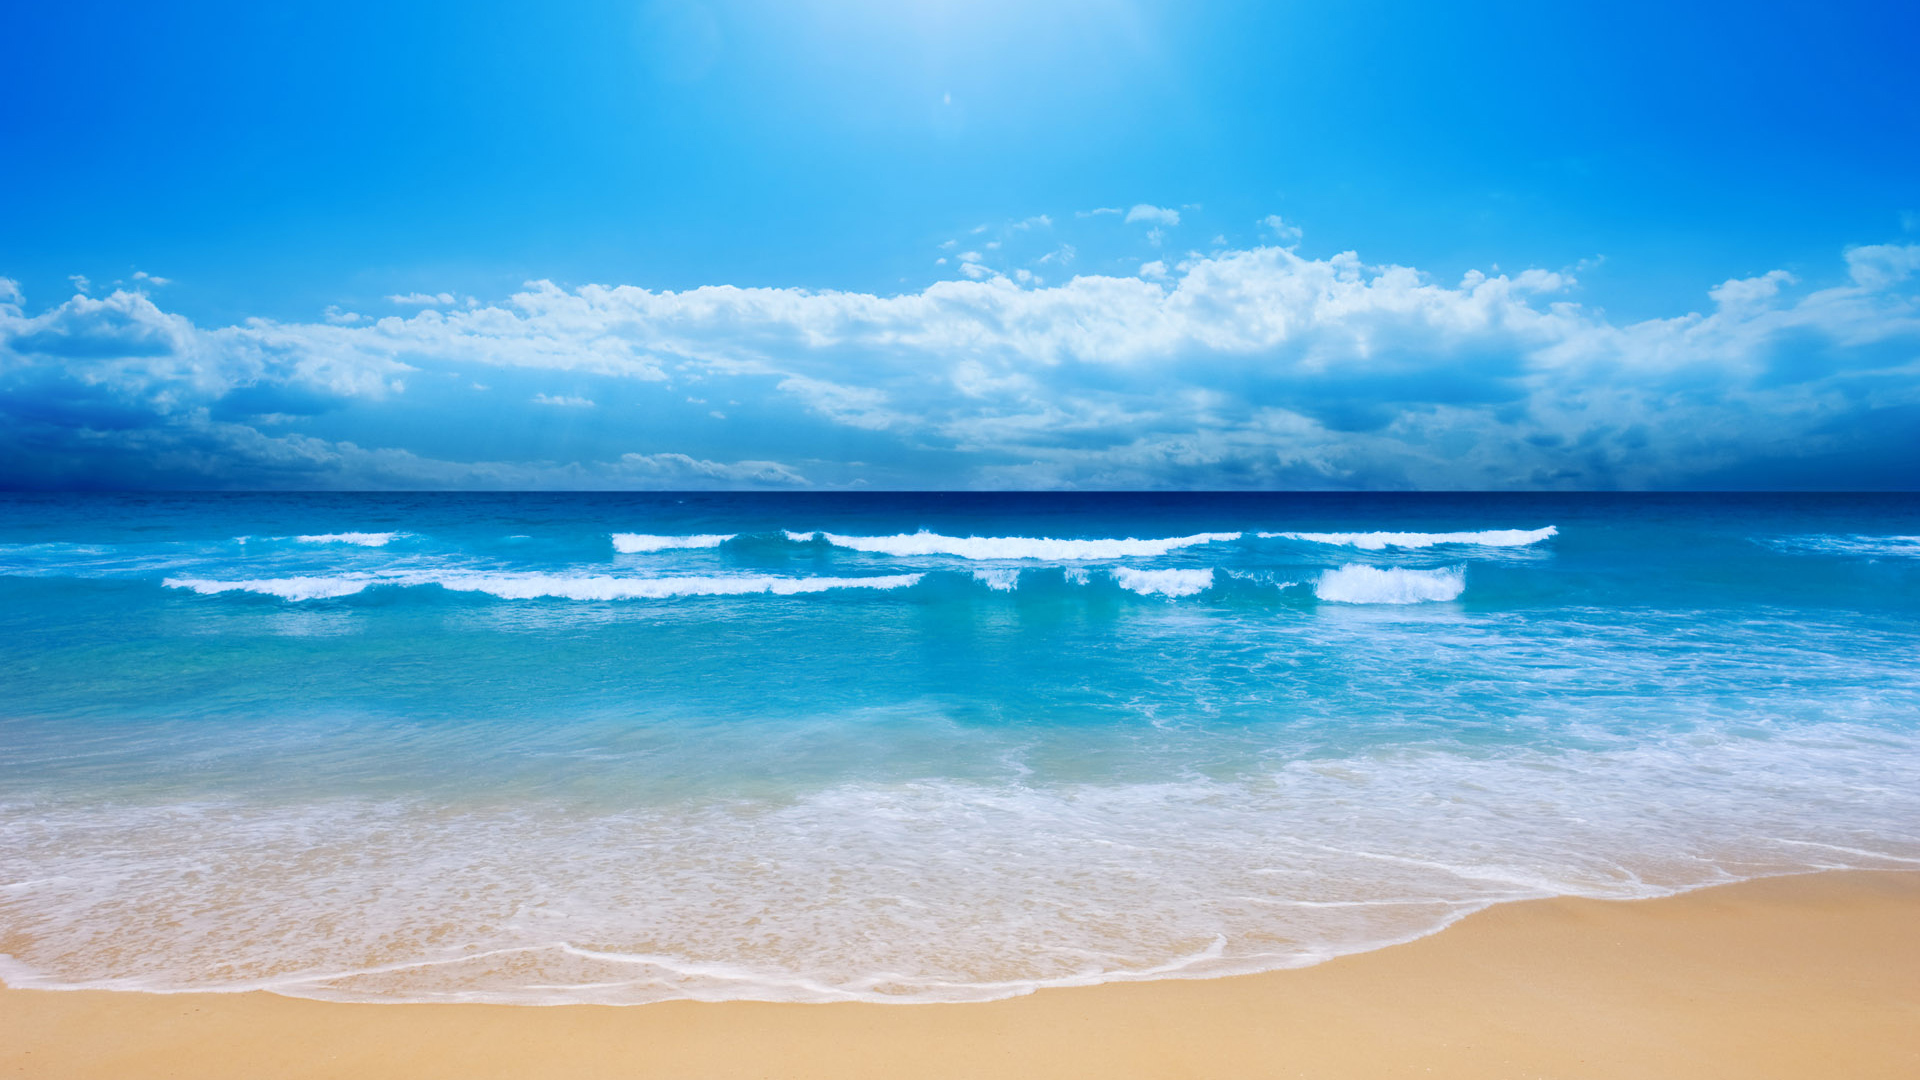 Small Sea Wave HDTV 1080p Wallpapers HD Wallpapers 1920x1080